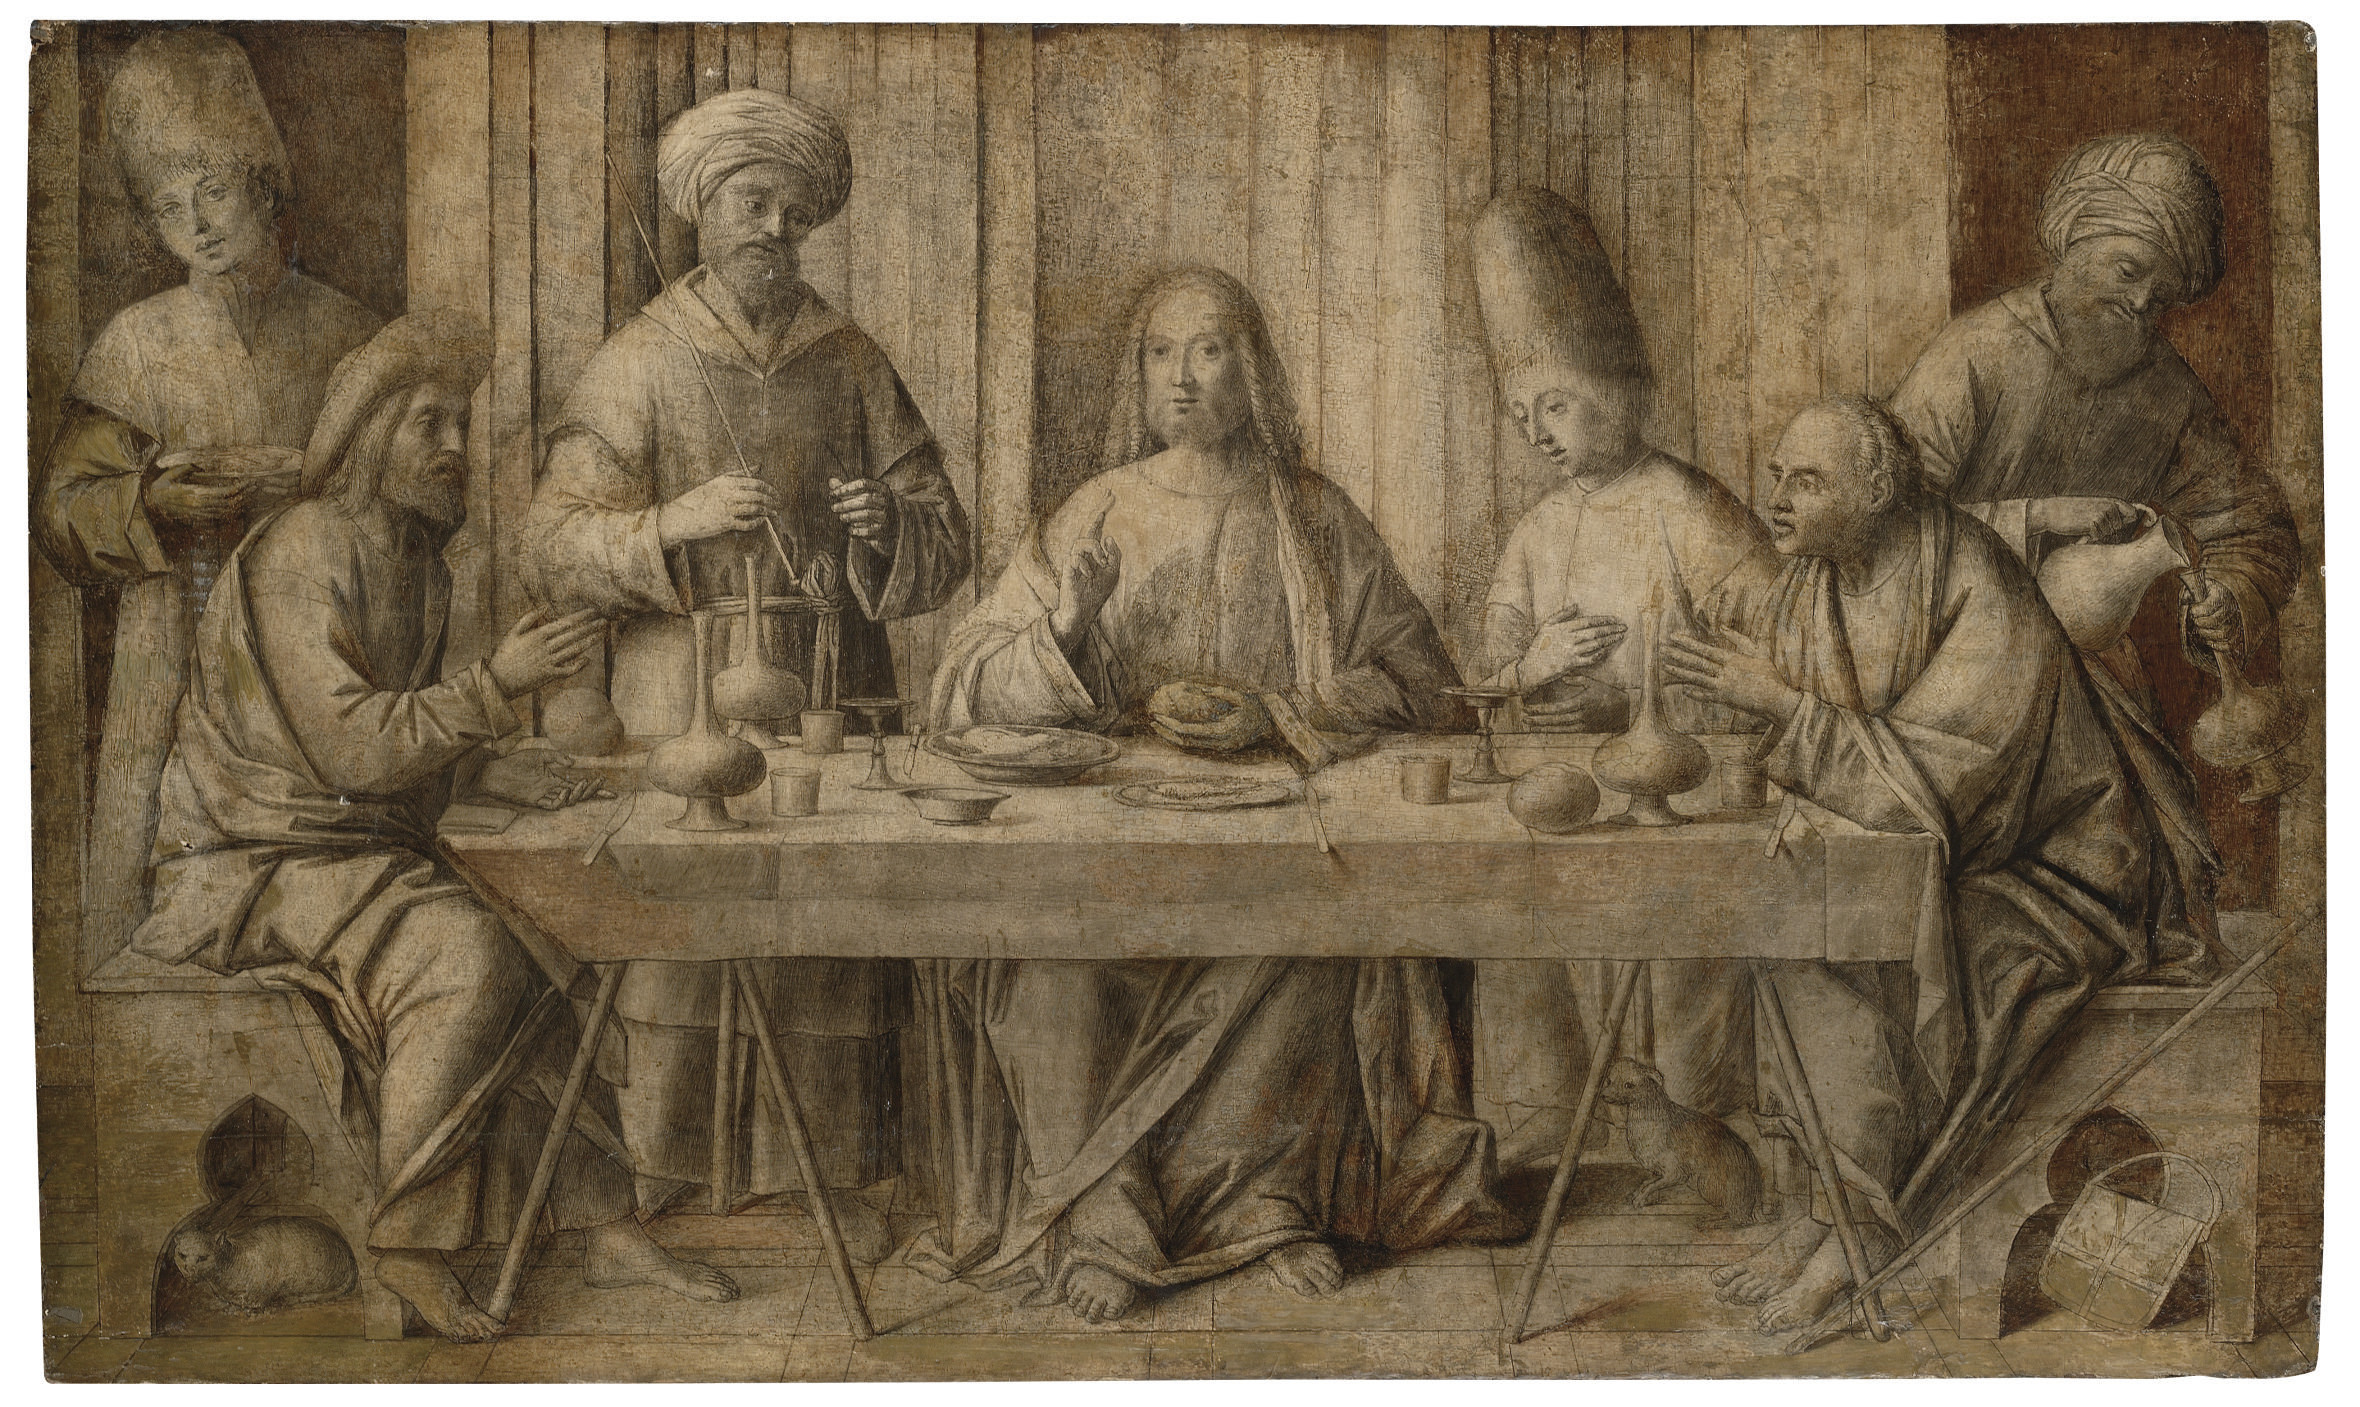 The Supper at Emmaus, en grisaille